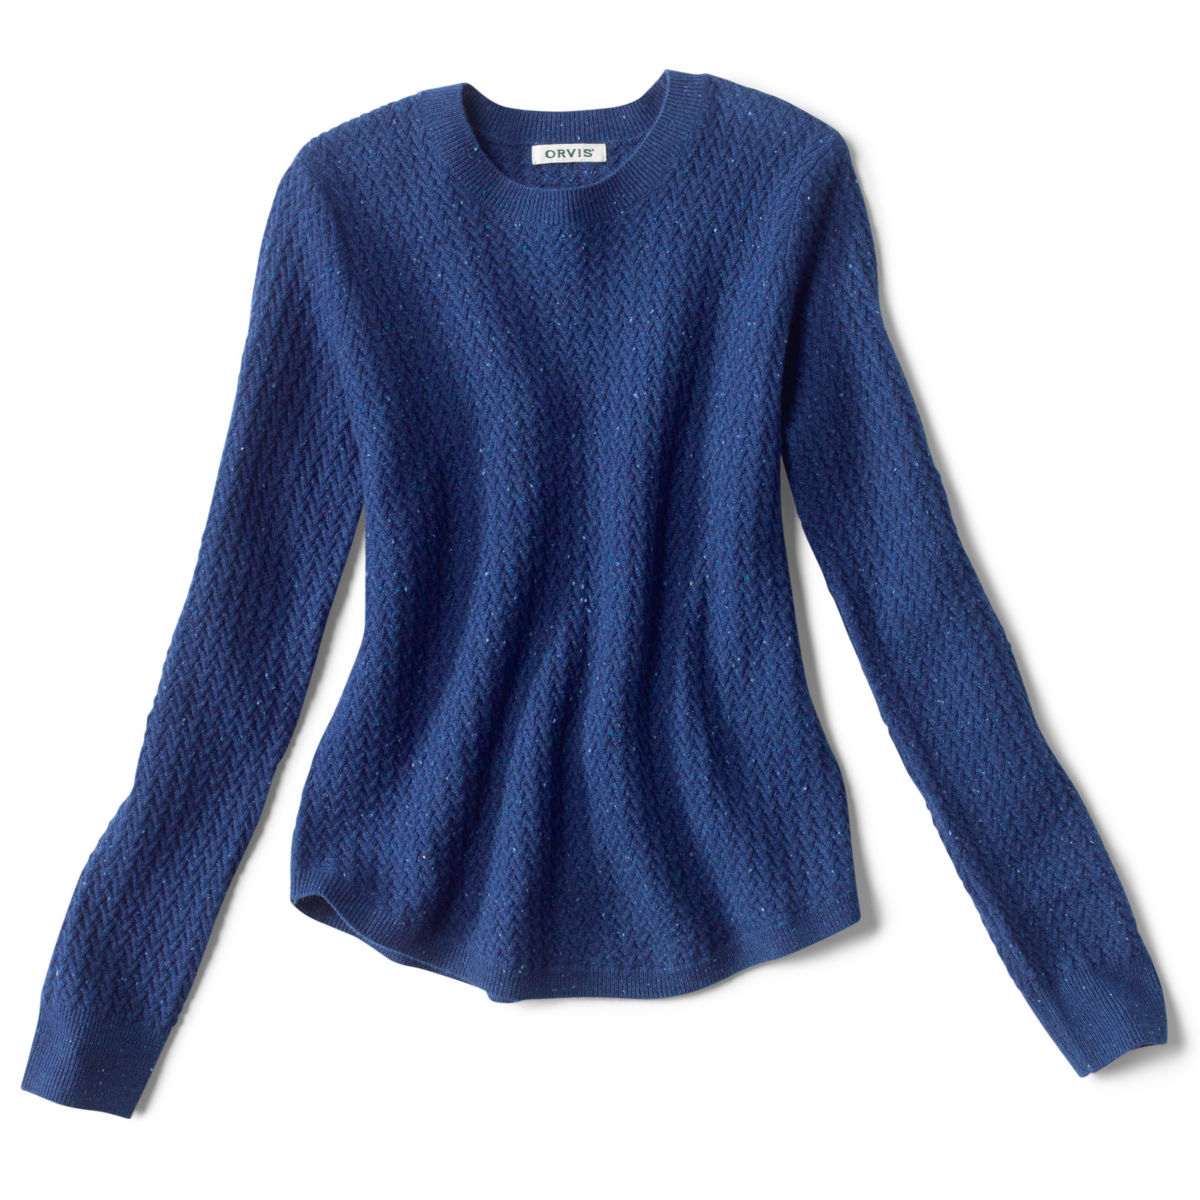 Donegal Crew Textured-Stitch Sweater - MOONLIGHT BLUEimage number 0